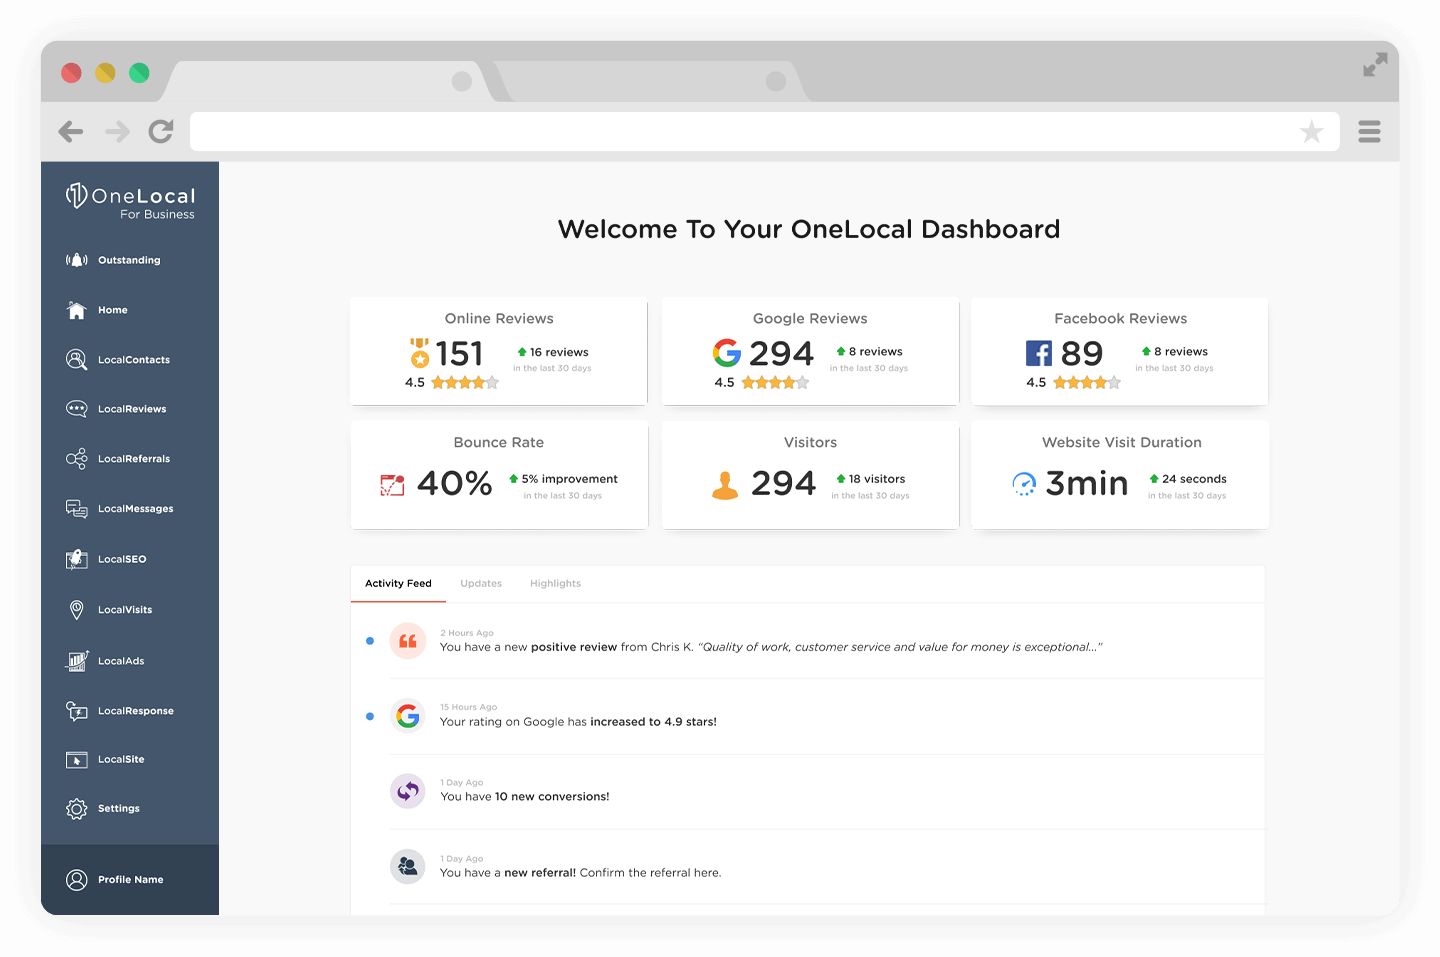 LocalSEO Software - Manage all your marketing needs from one dashboard. Attract, convert, and nurture clients with a full set of marketing tools from OneLocal